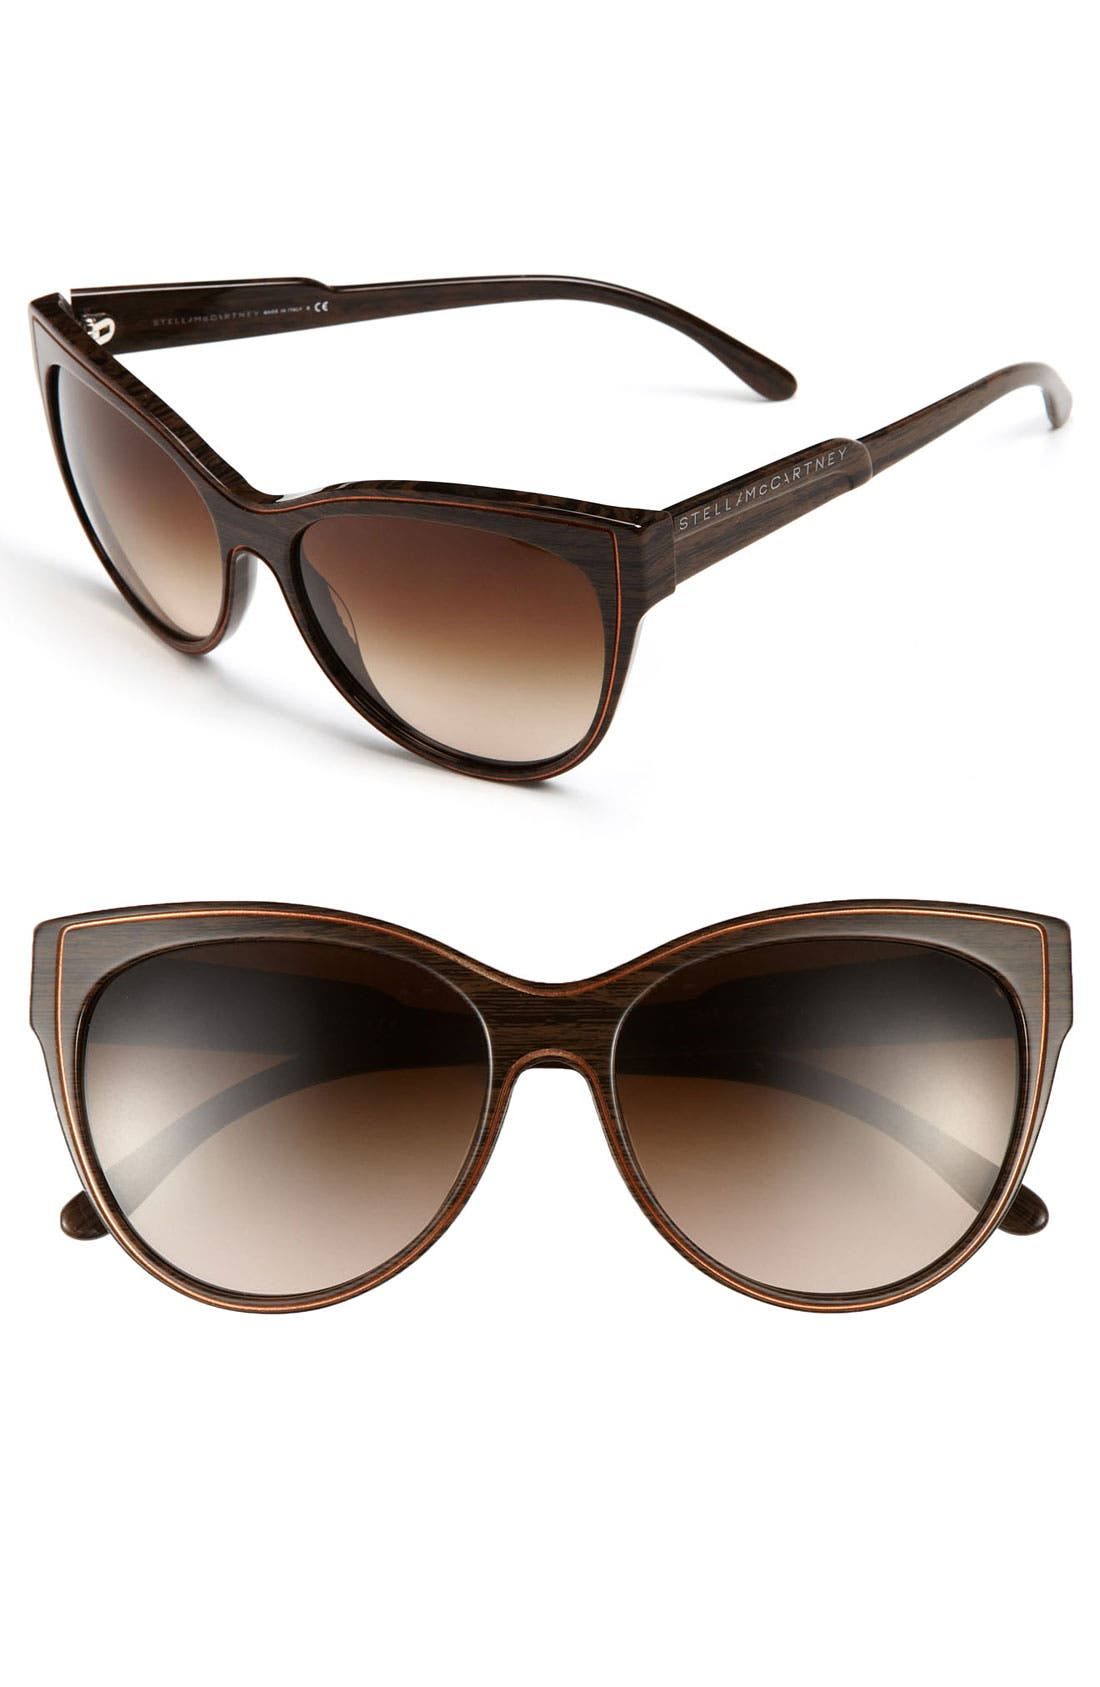 Main Image - Stella McCartney 44mm Retro Cat's Eye Sunglasses